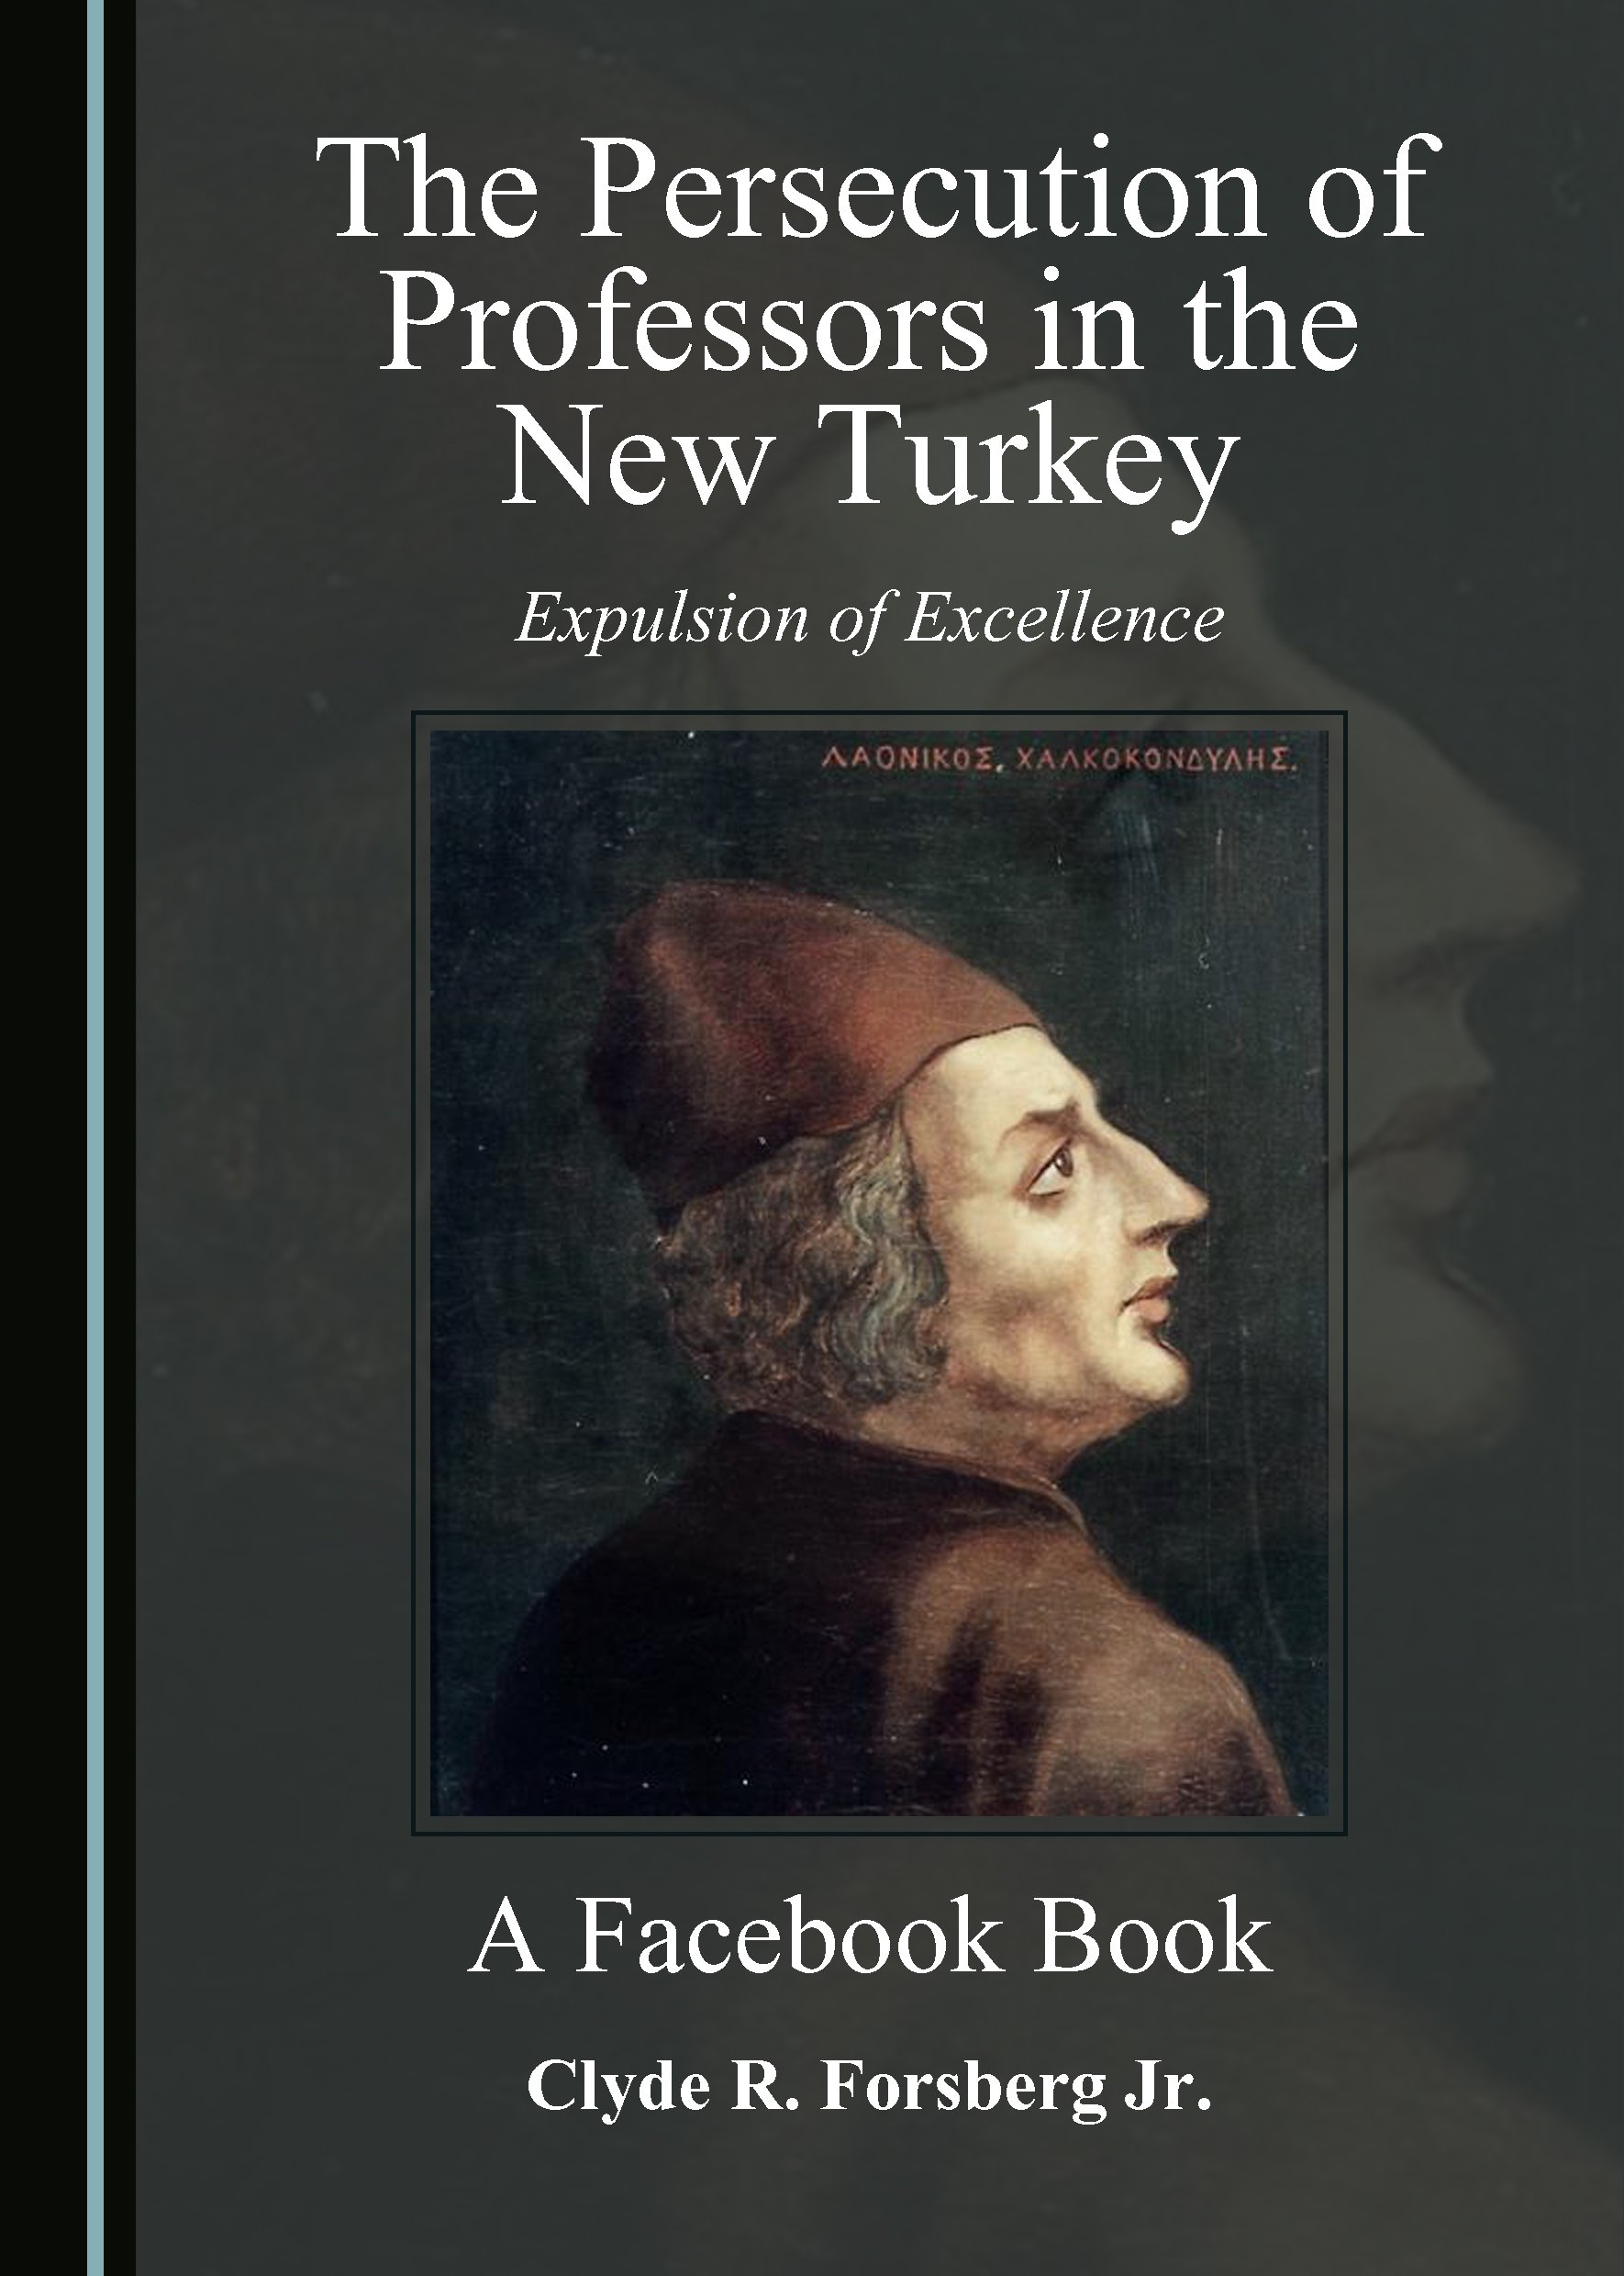 The Persecution of Professors in the New Turkey: Expulsion of Excellence – A Facebook Book